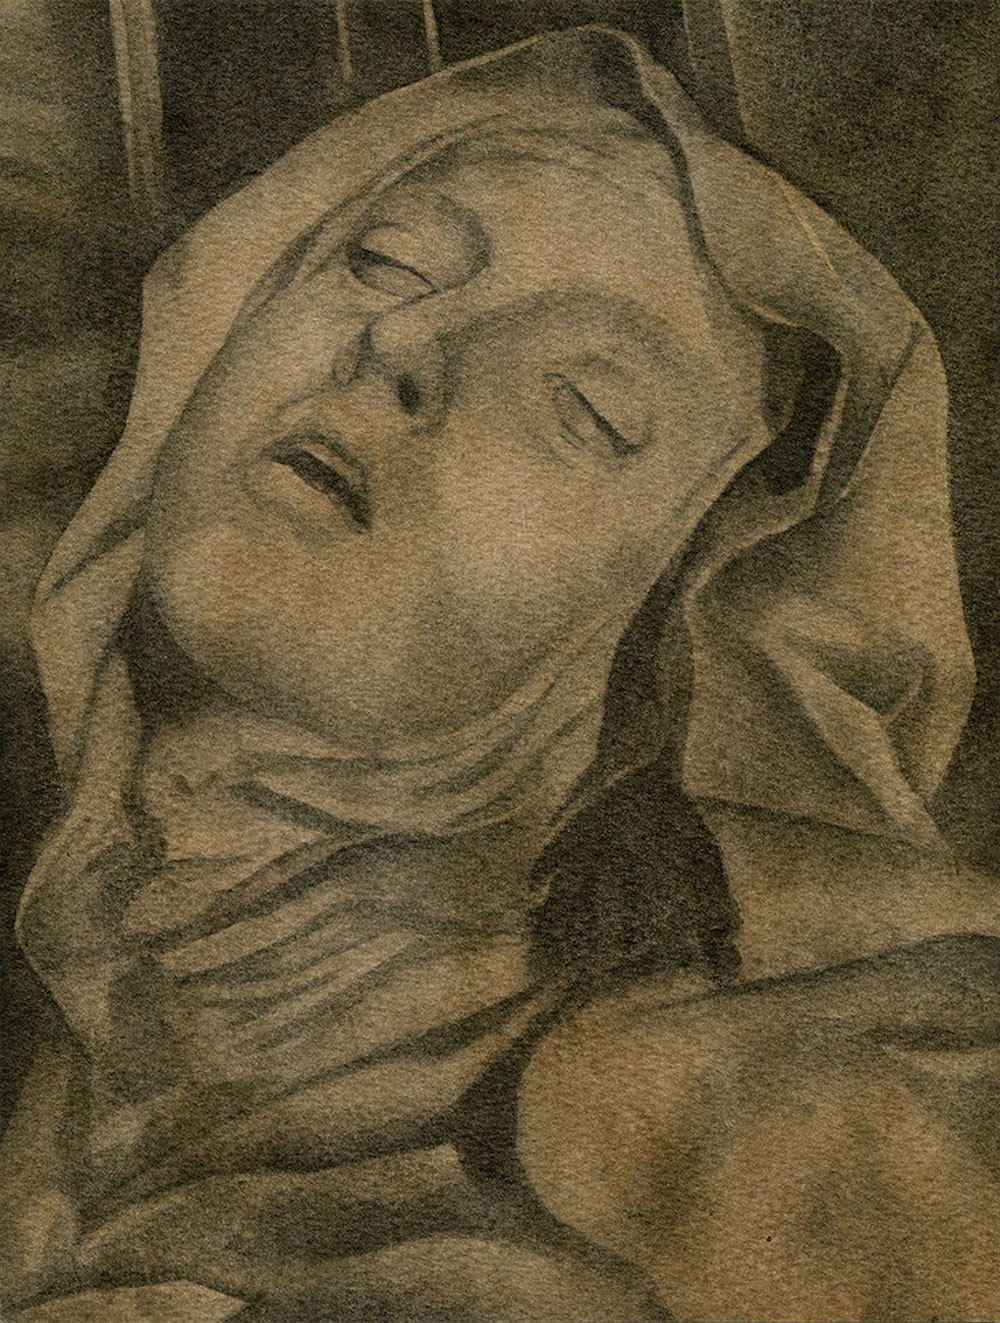 Fredrik Söderberg, The Ecstasy of Saint Teresa, 2016, watercolour on paper, 24 x 18 cm